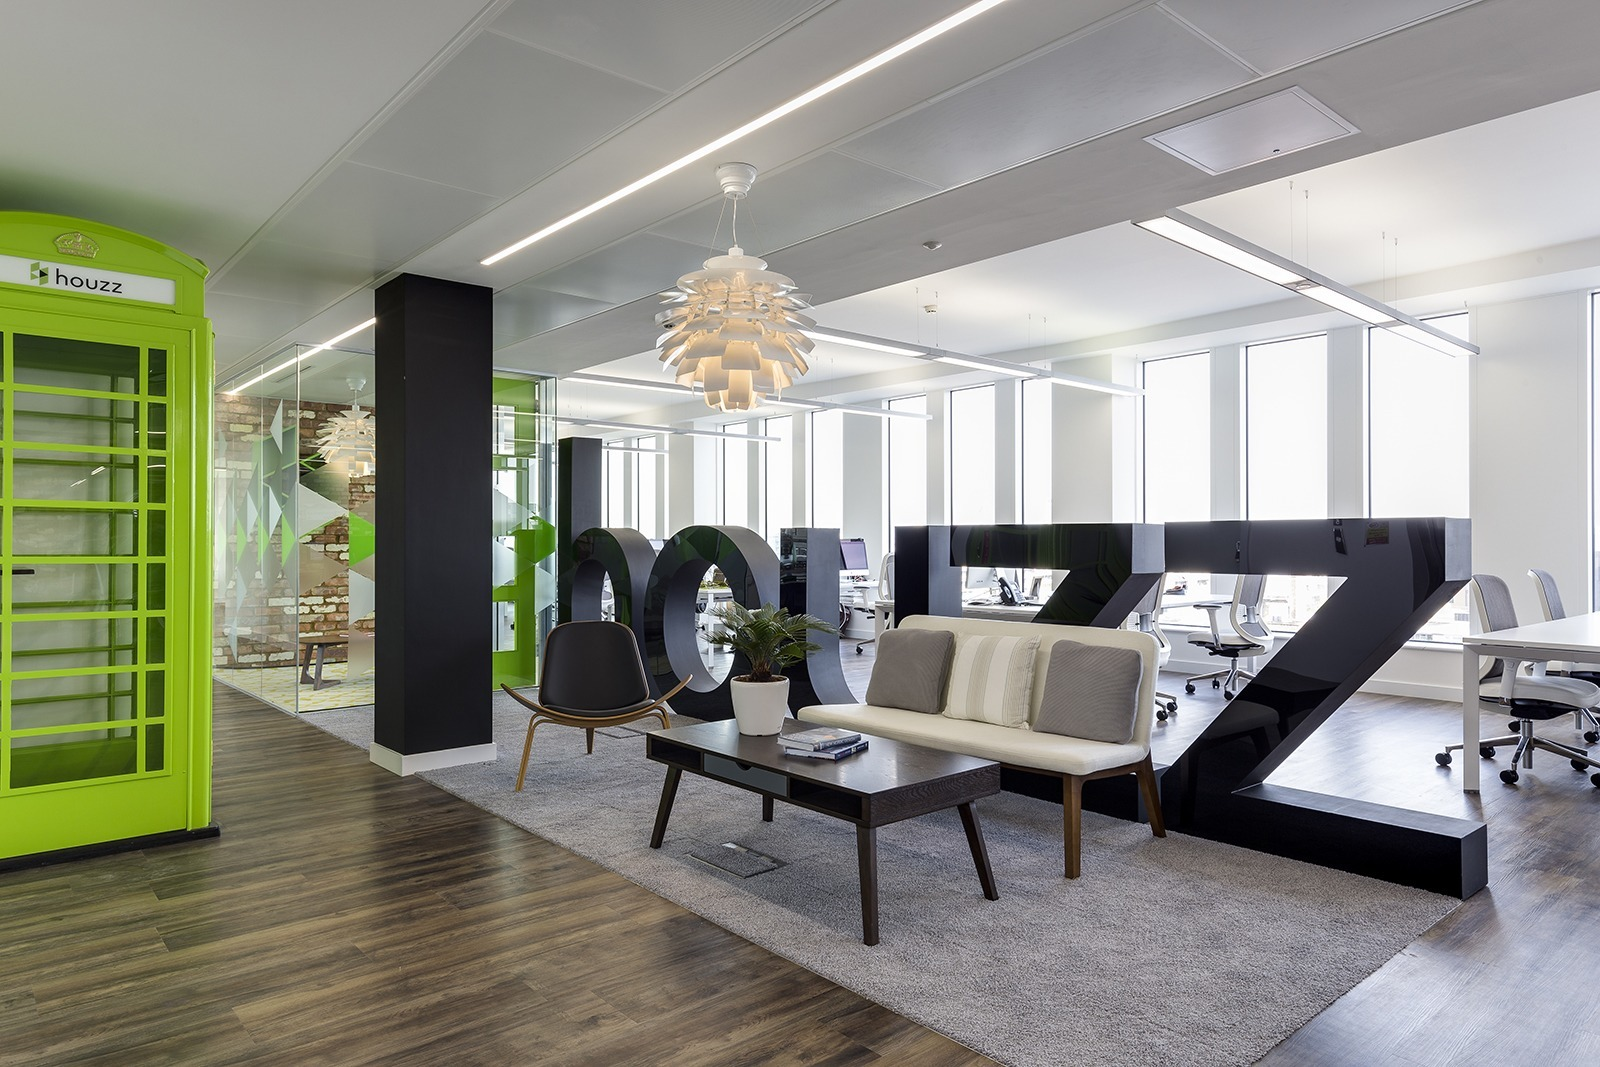 a tour of houzz s new european headquarters officelovin 39. Black Bedroom Furniture Sets. Home Design Ideas